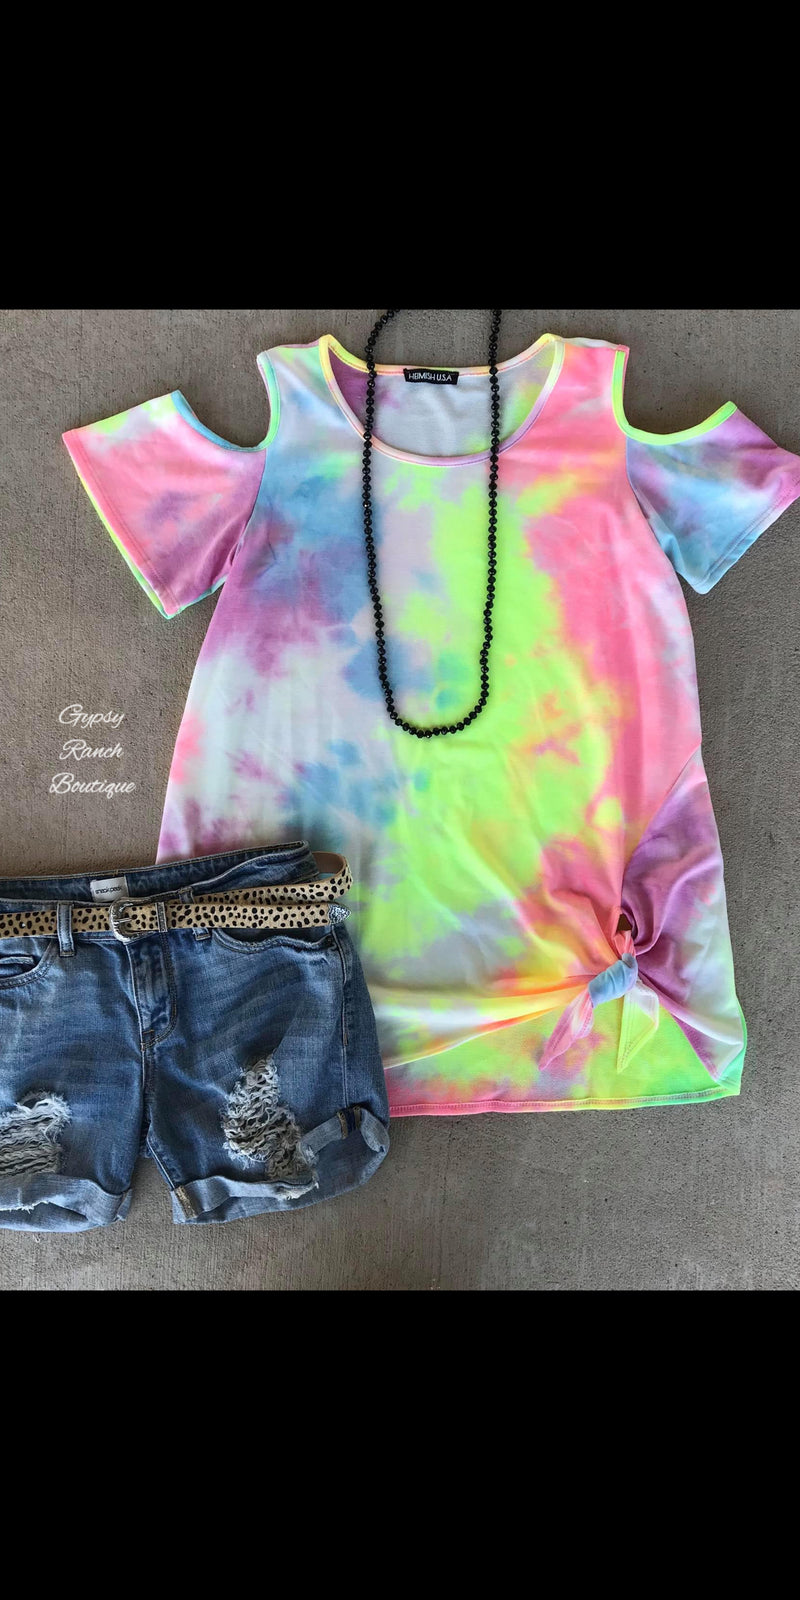 Brinkley Tye Dye Cold Shoulder Top - Also in Plus Size